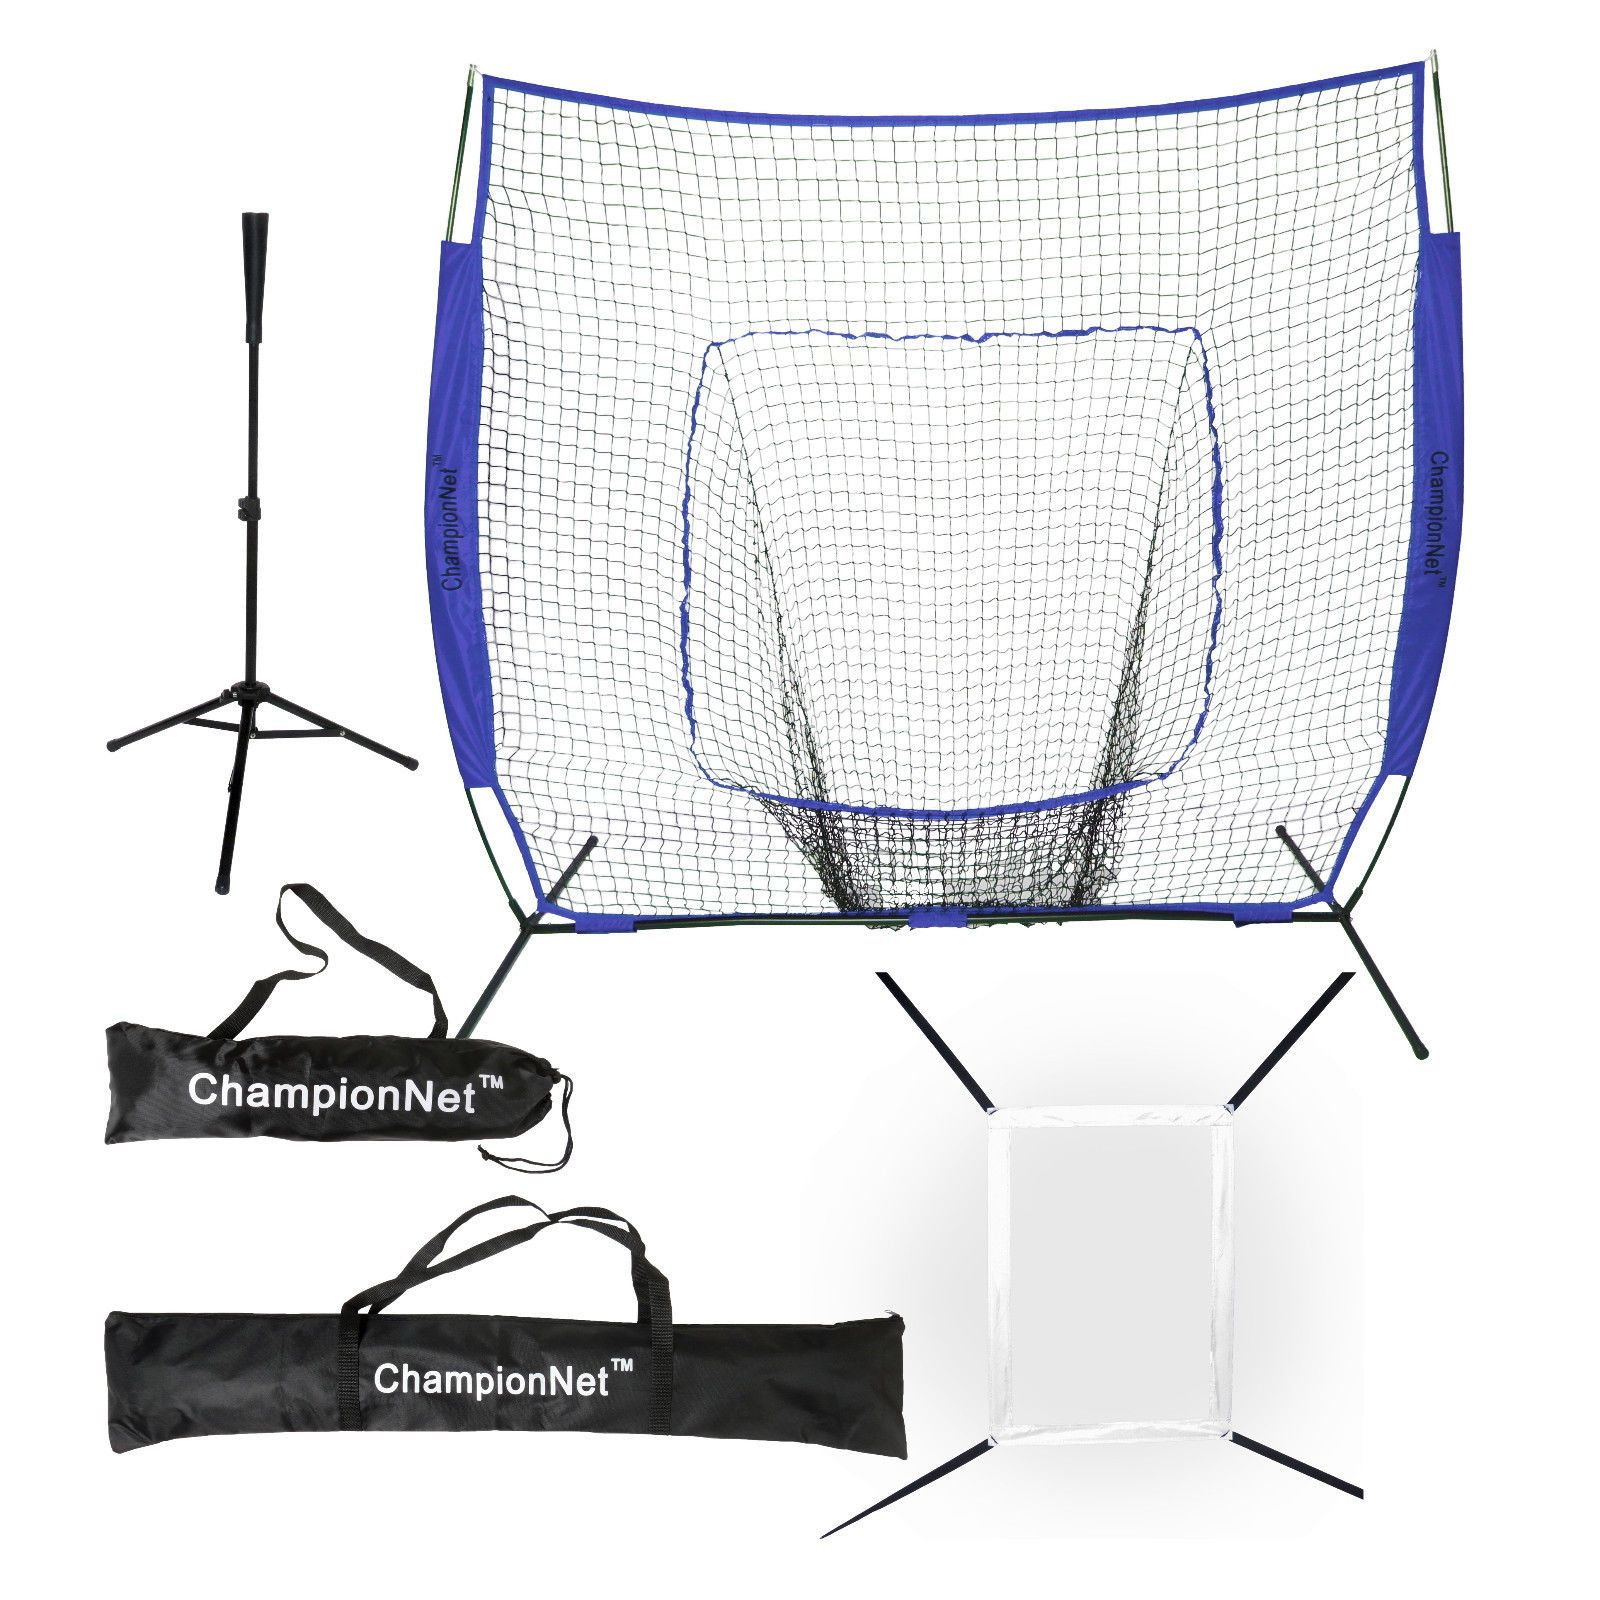 Old Fashioned Home Batting Cage Ideas Frieze - Home Decorating Ideas ...